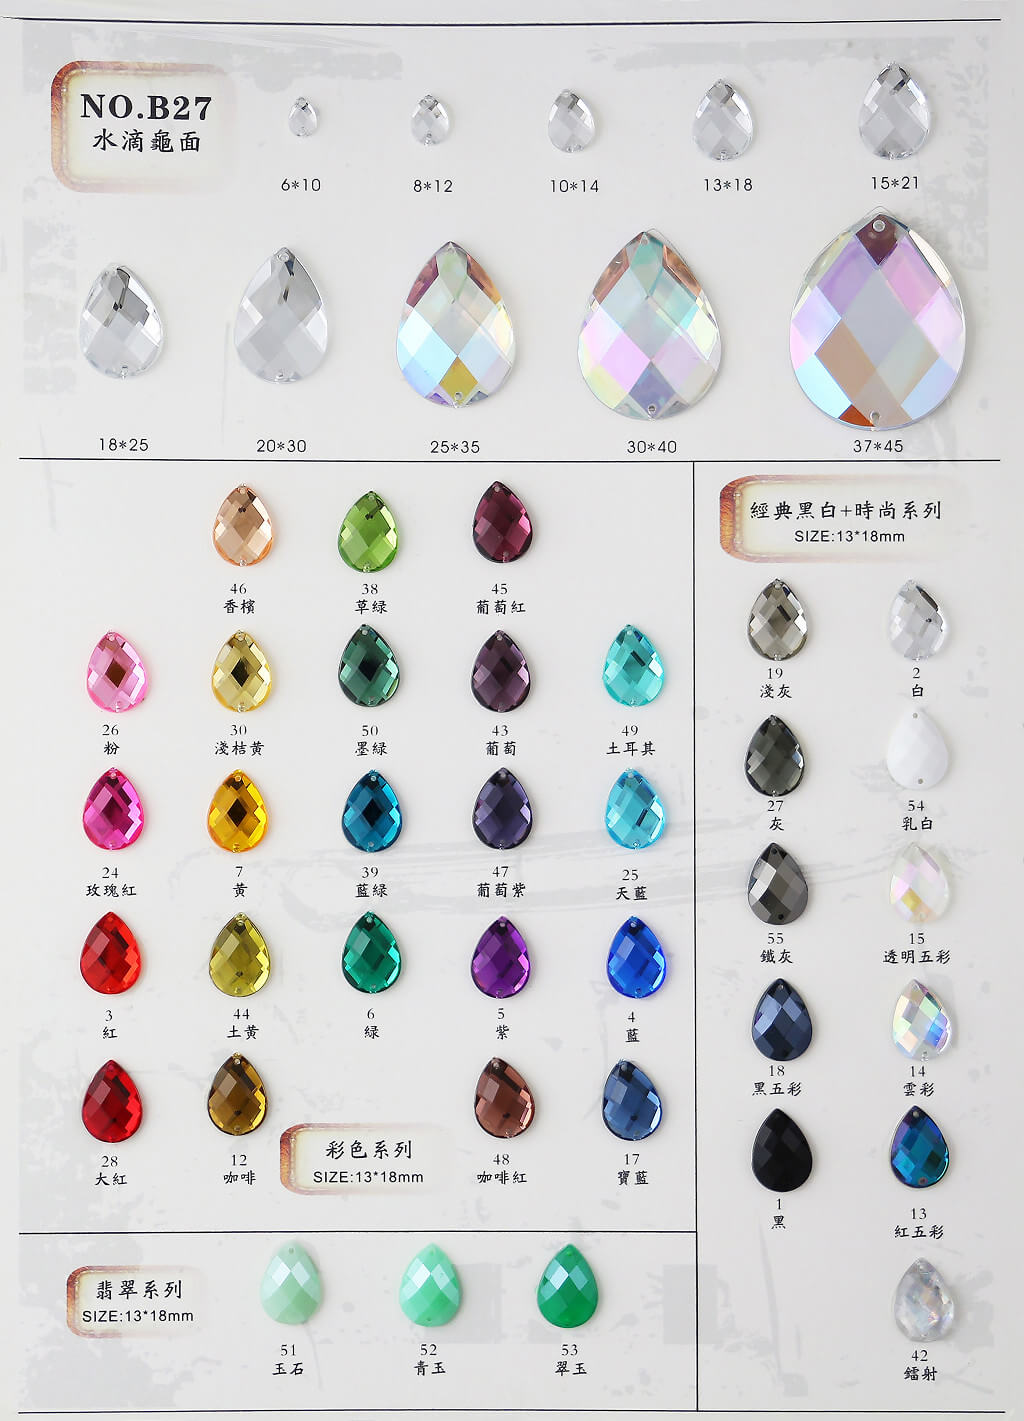 sew on beads and crystals wholesale catalogue